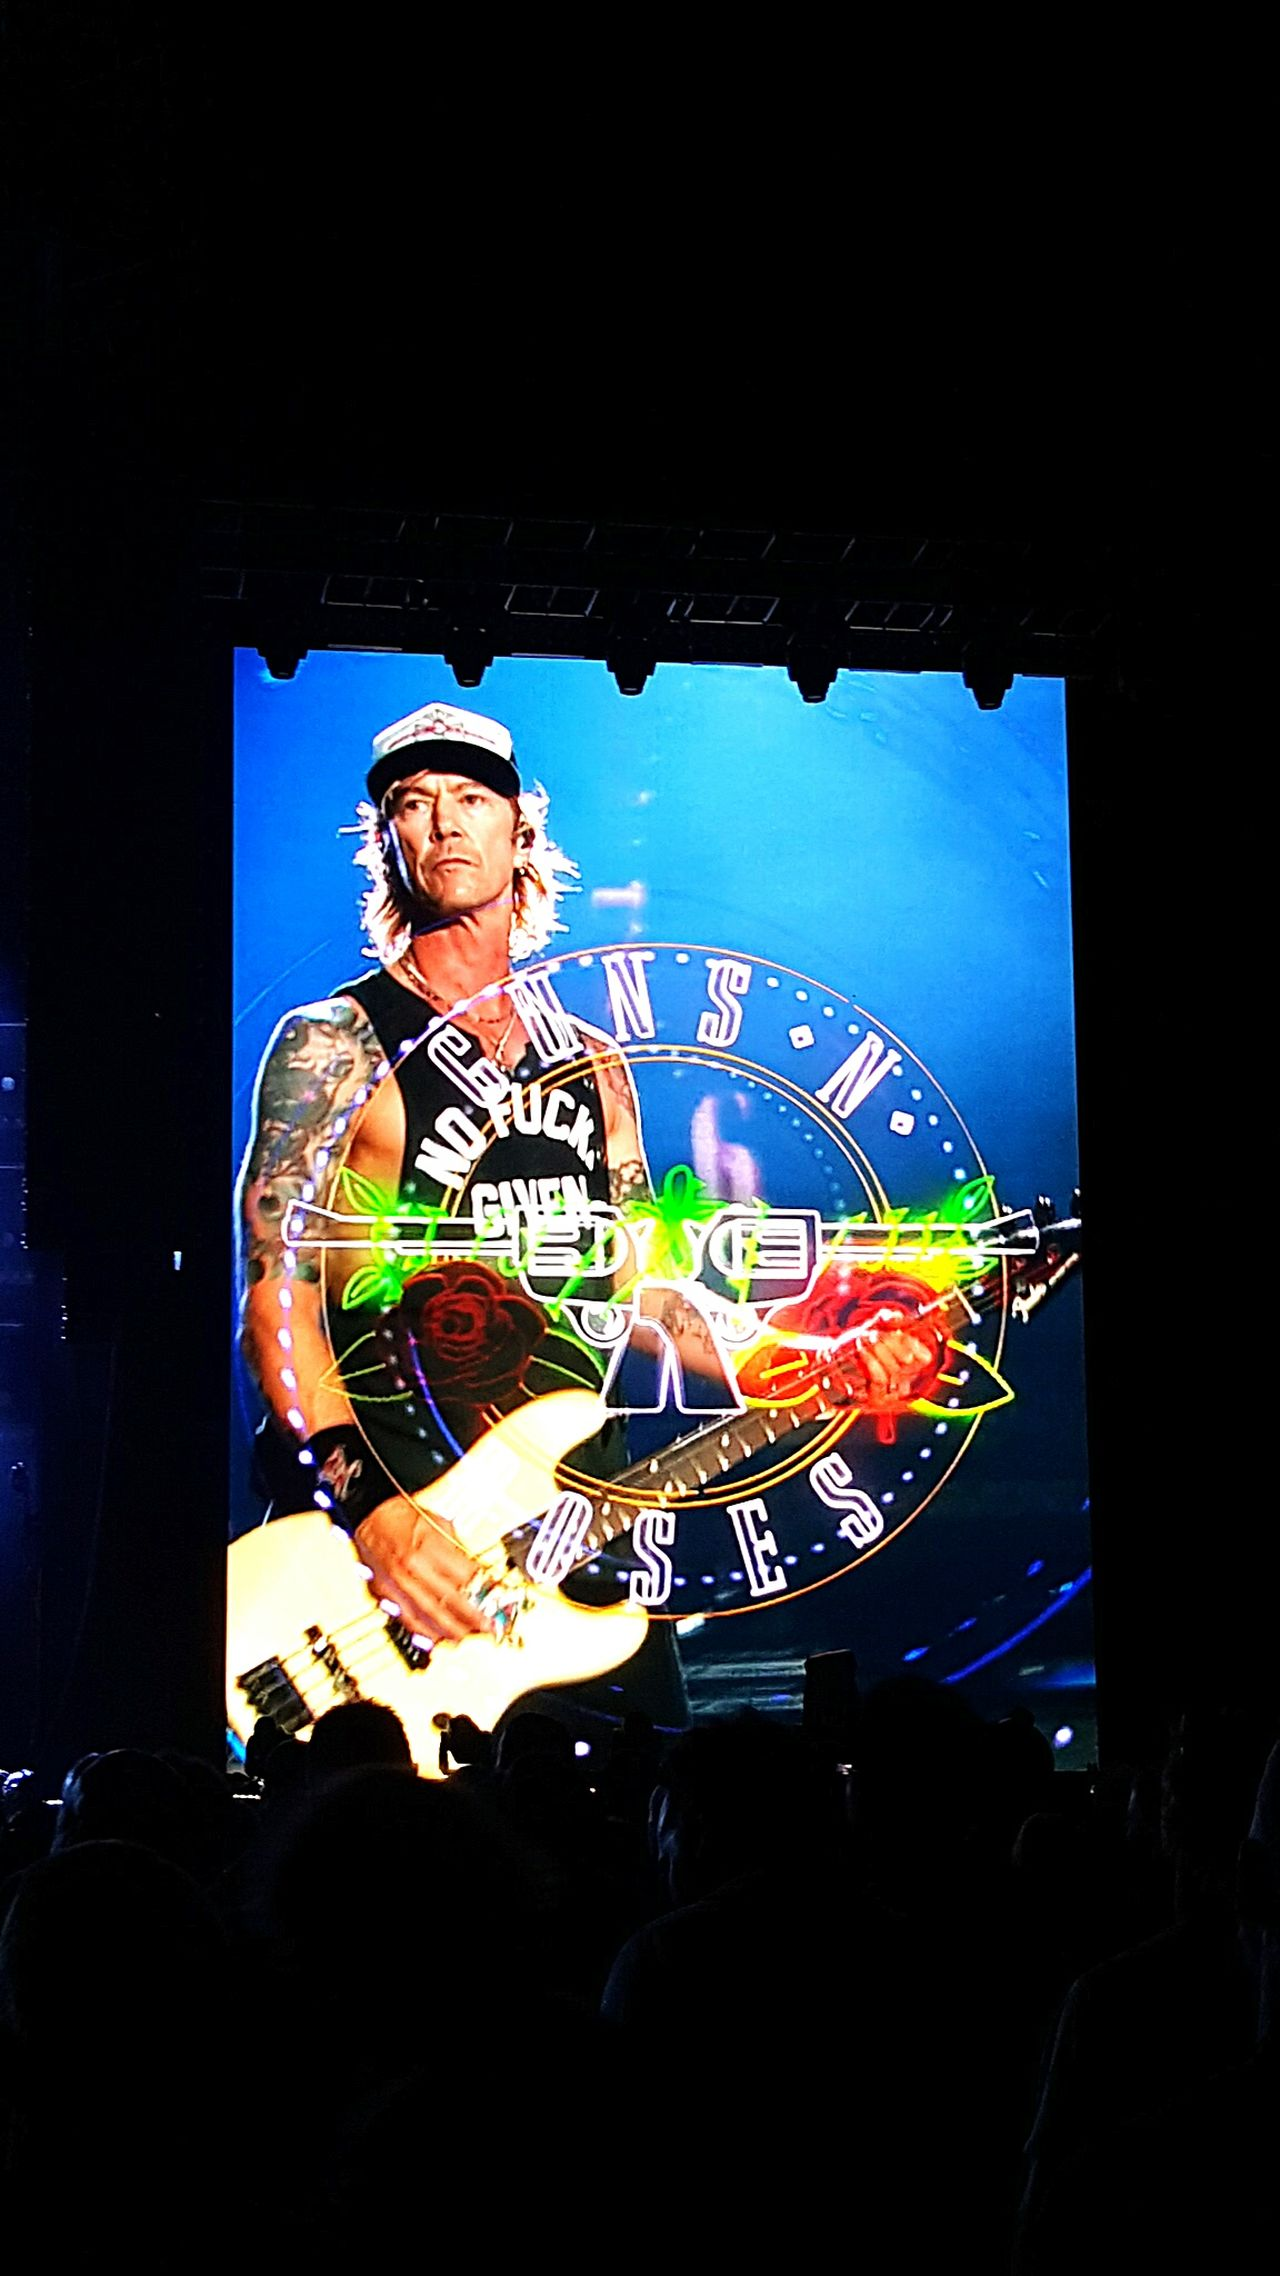 Guns N' Roses Duff Mckagan Not In This Lifetime Western Springs Auckland February 4 2017 Rock Rock N Roll Hard Rock Concert HeadbangersFest Epic Concert Welcome To The Jungle Bassist Adult Musician Stage - Performance Space Music